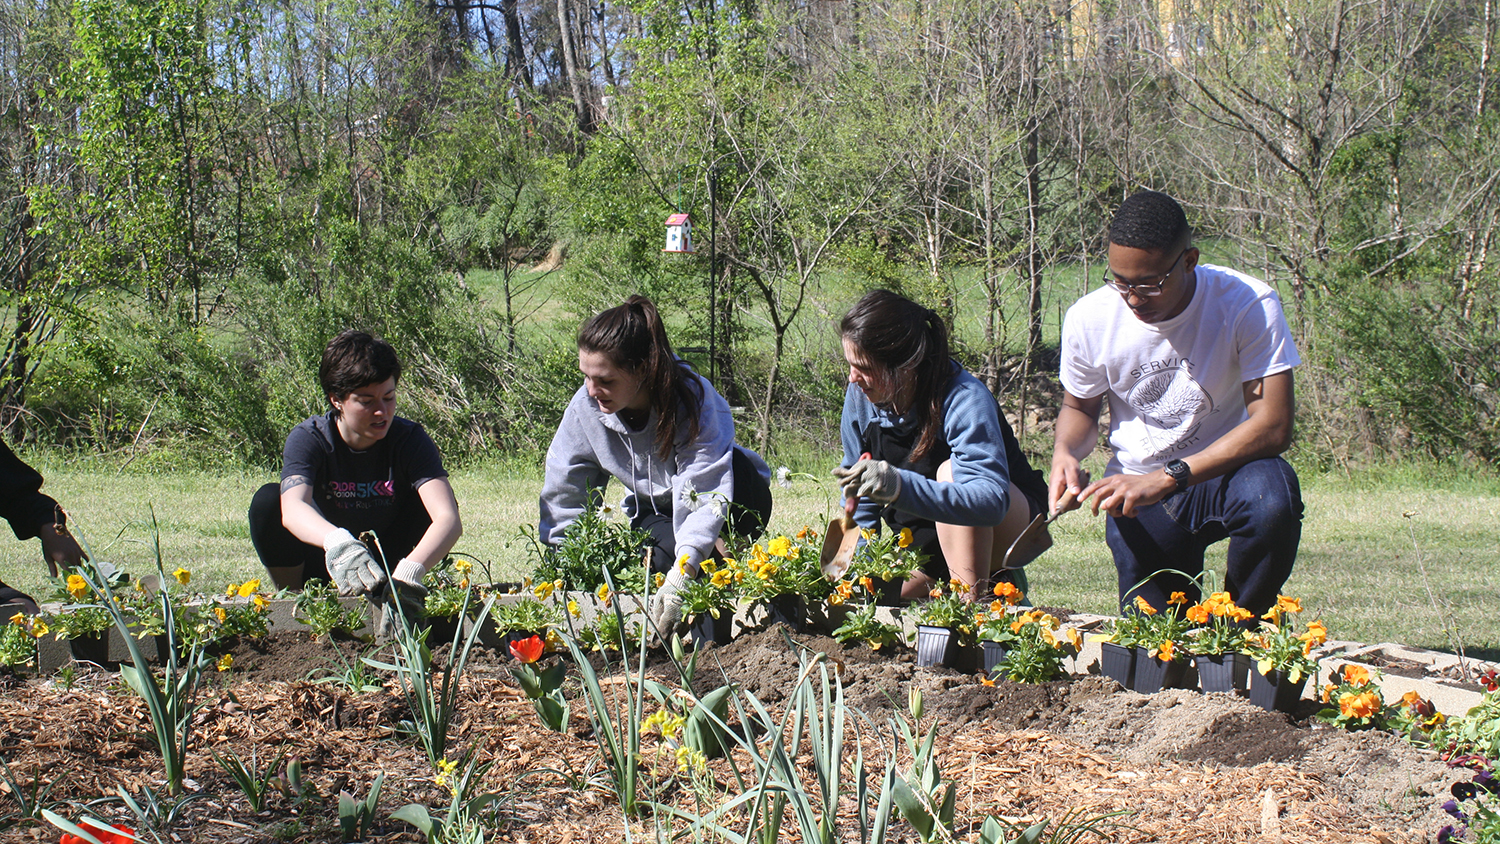 Volunteers plant flowers